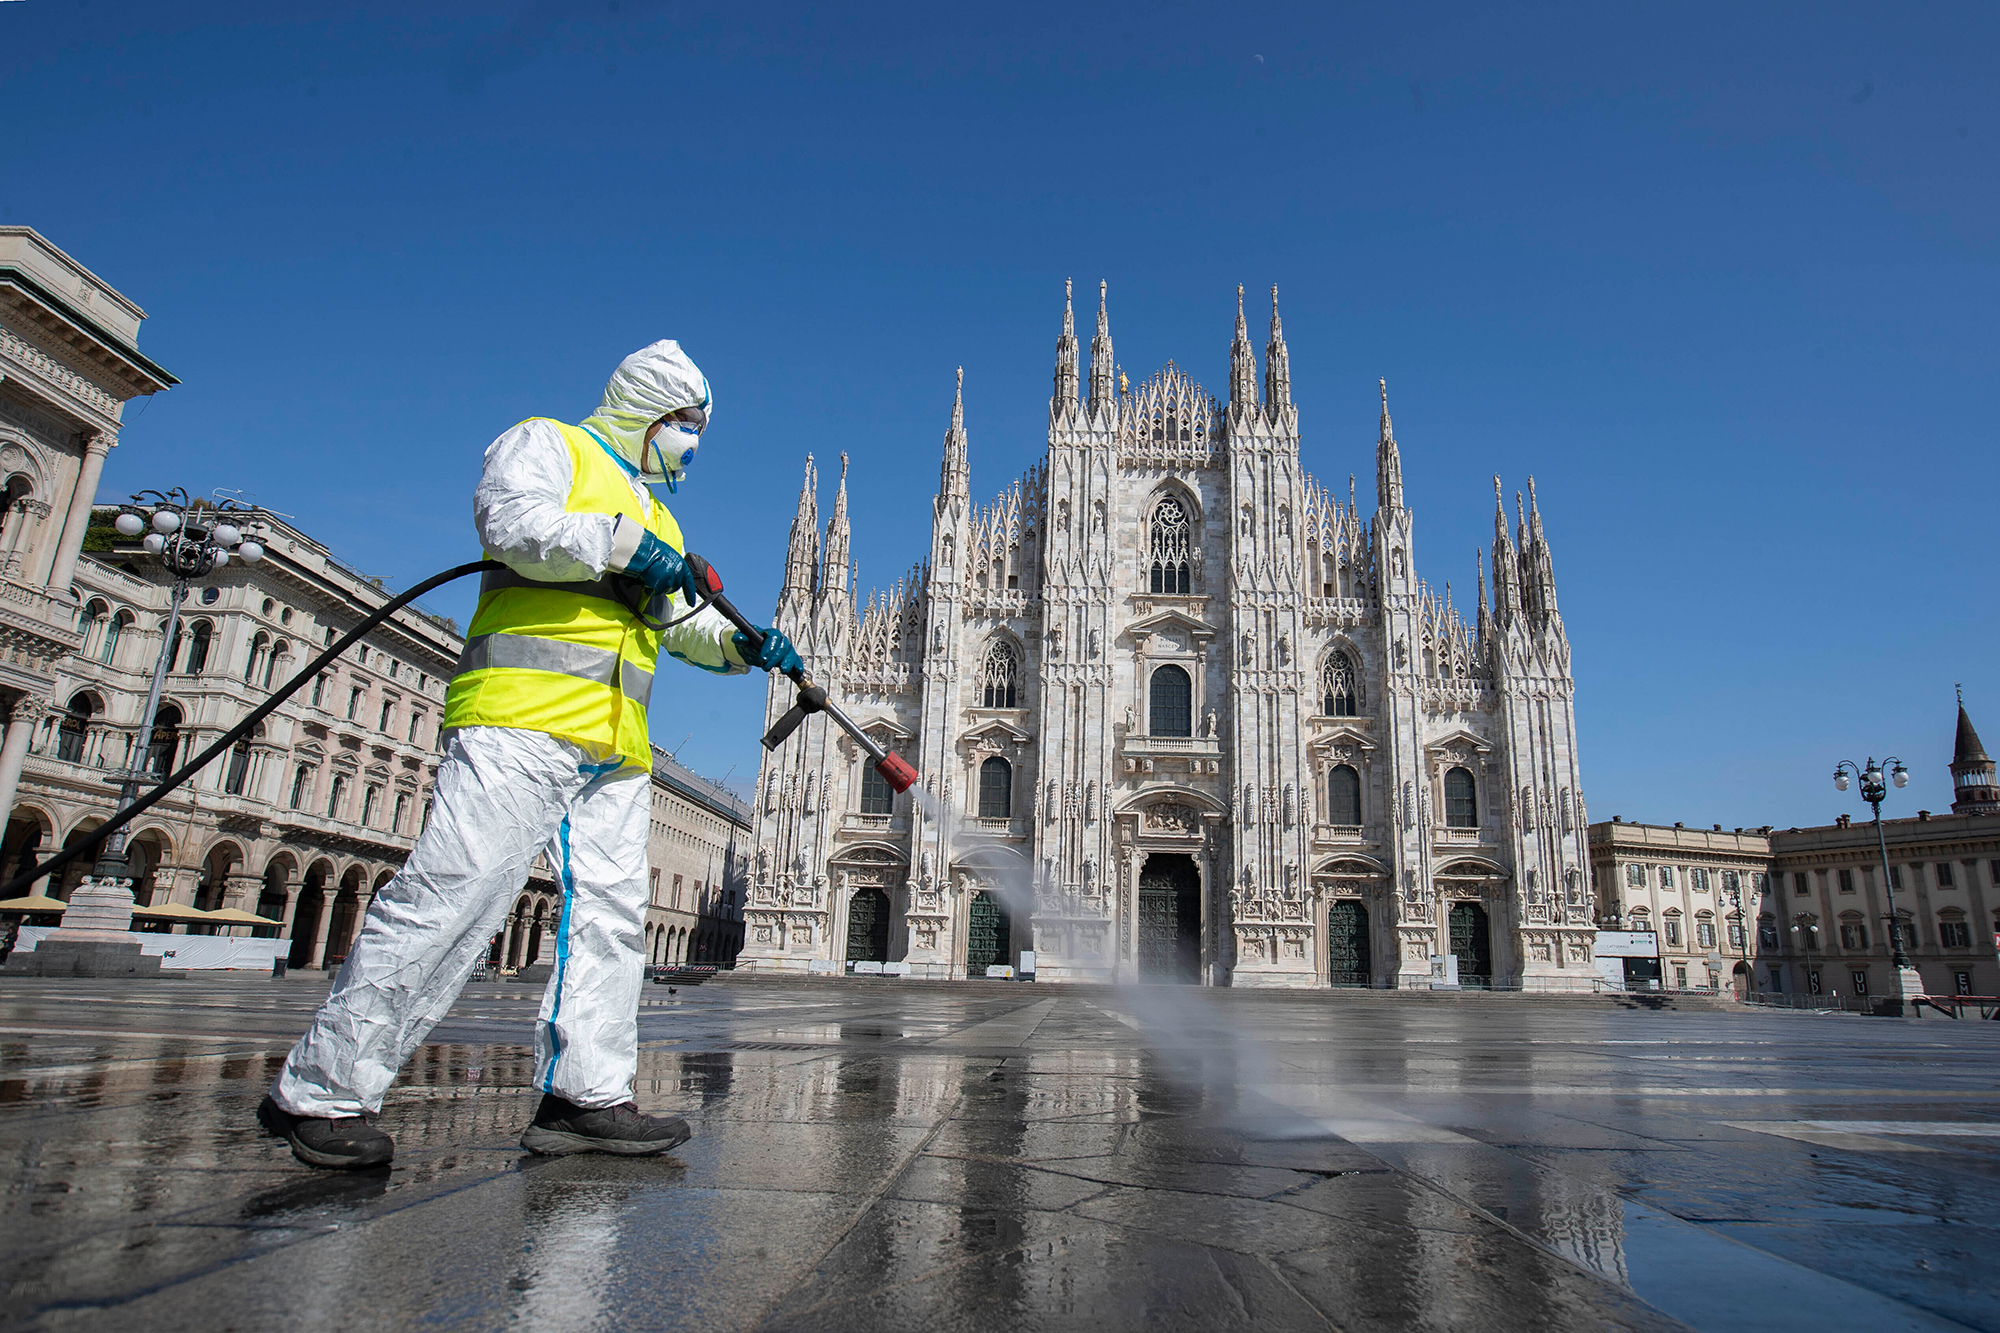 A worker sprays disinfectant to sanitize Duomo square in Milan, Italy, on Tuesday, March 31.